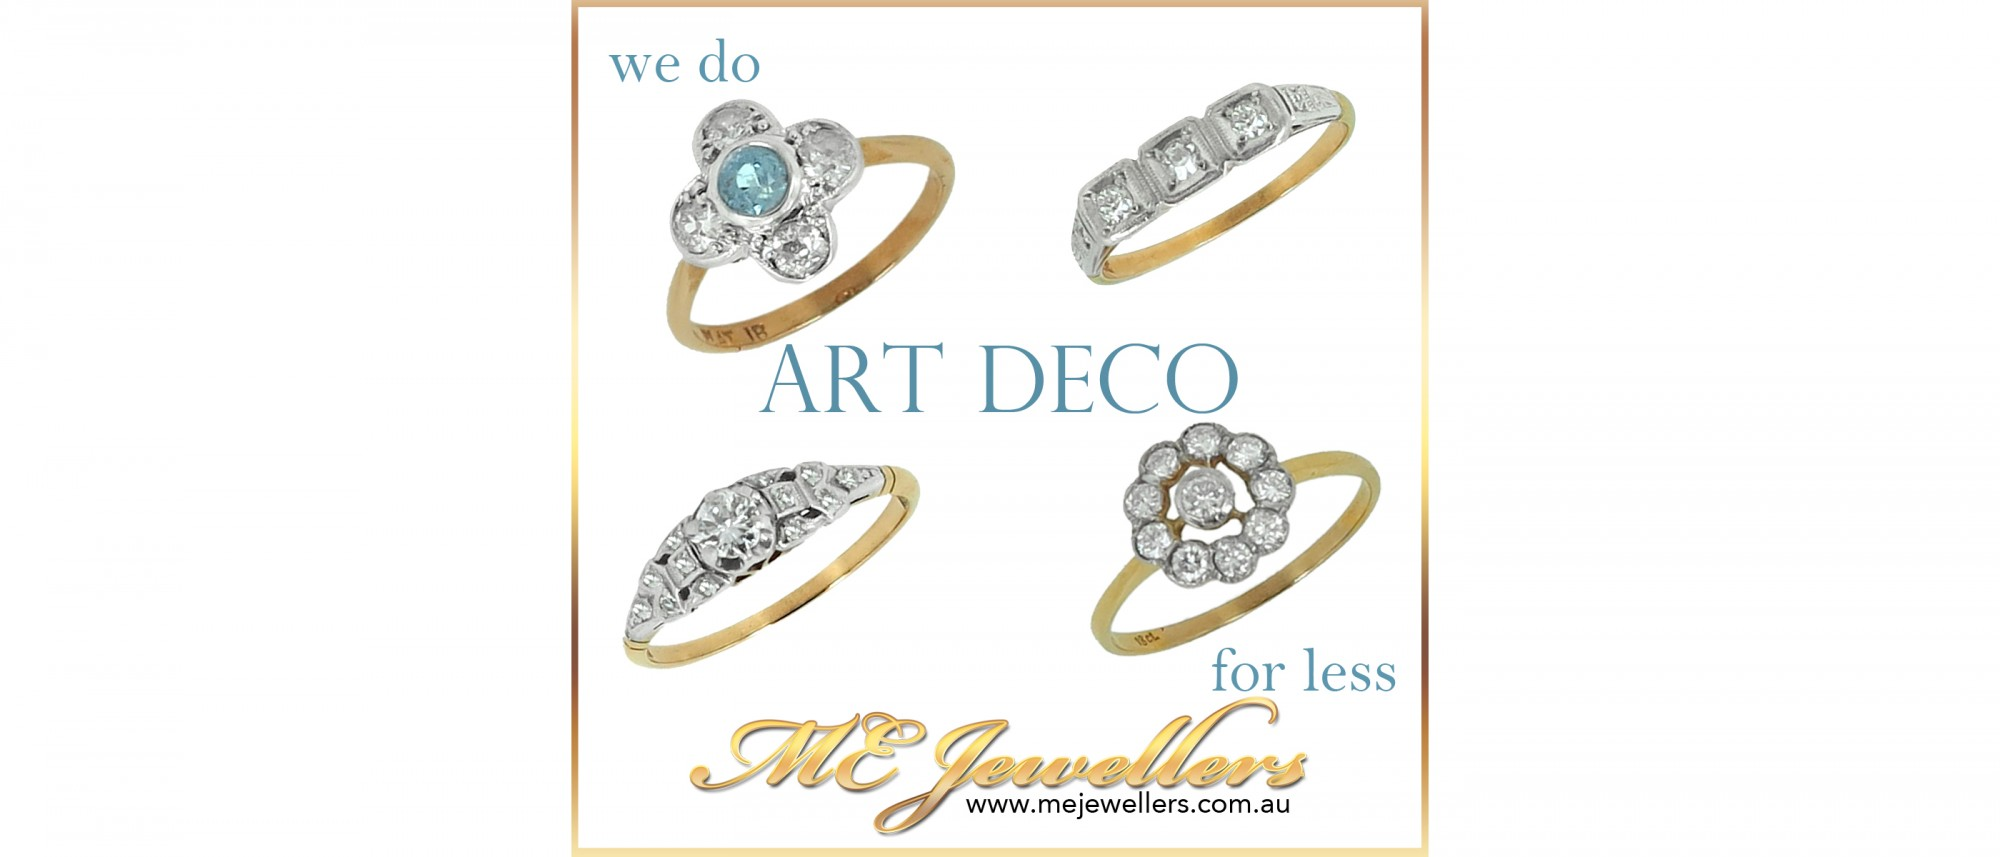 Art Deco Jewellery & Engagement Rings for Less